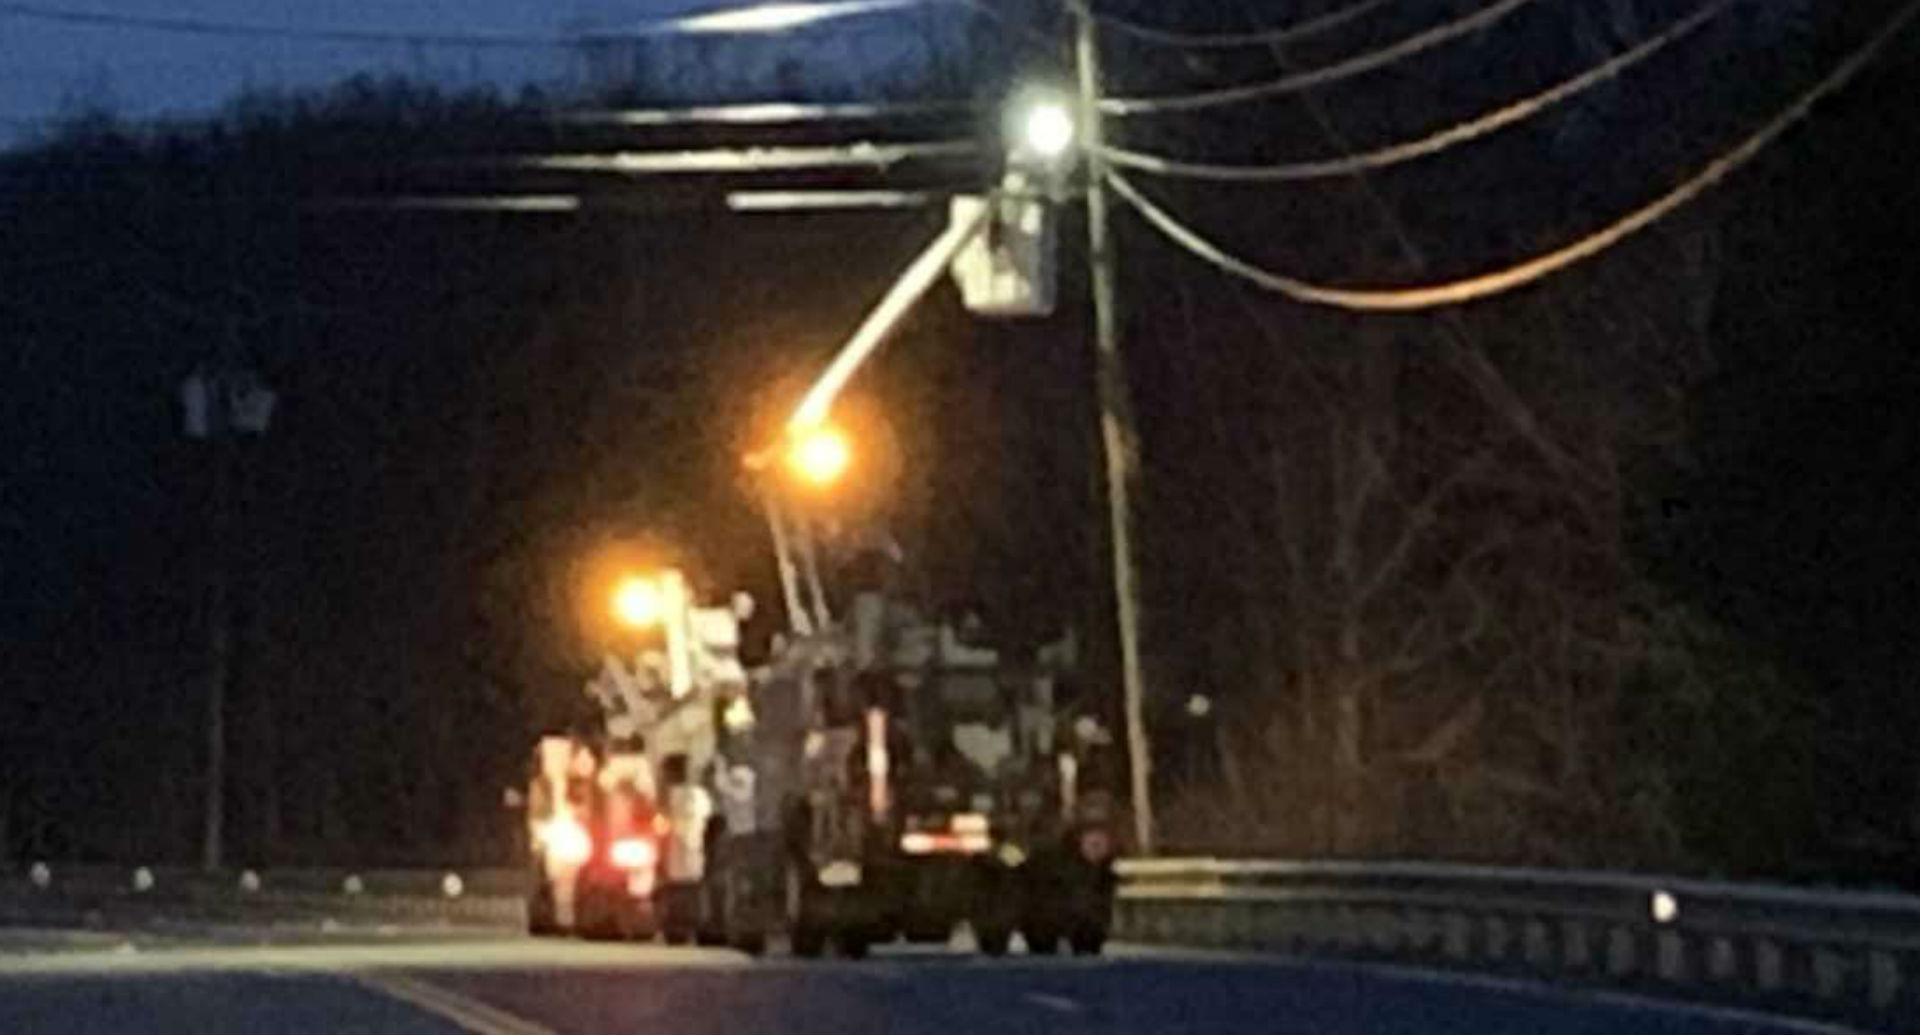 Route 63 in Naugatuck closed in both directions due to a car